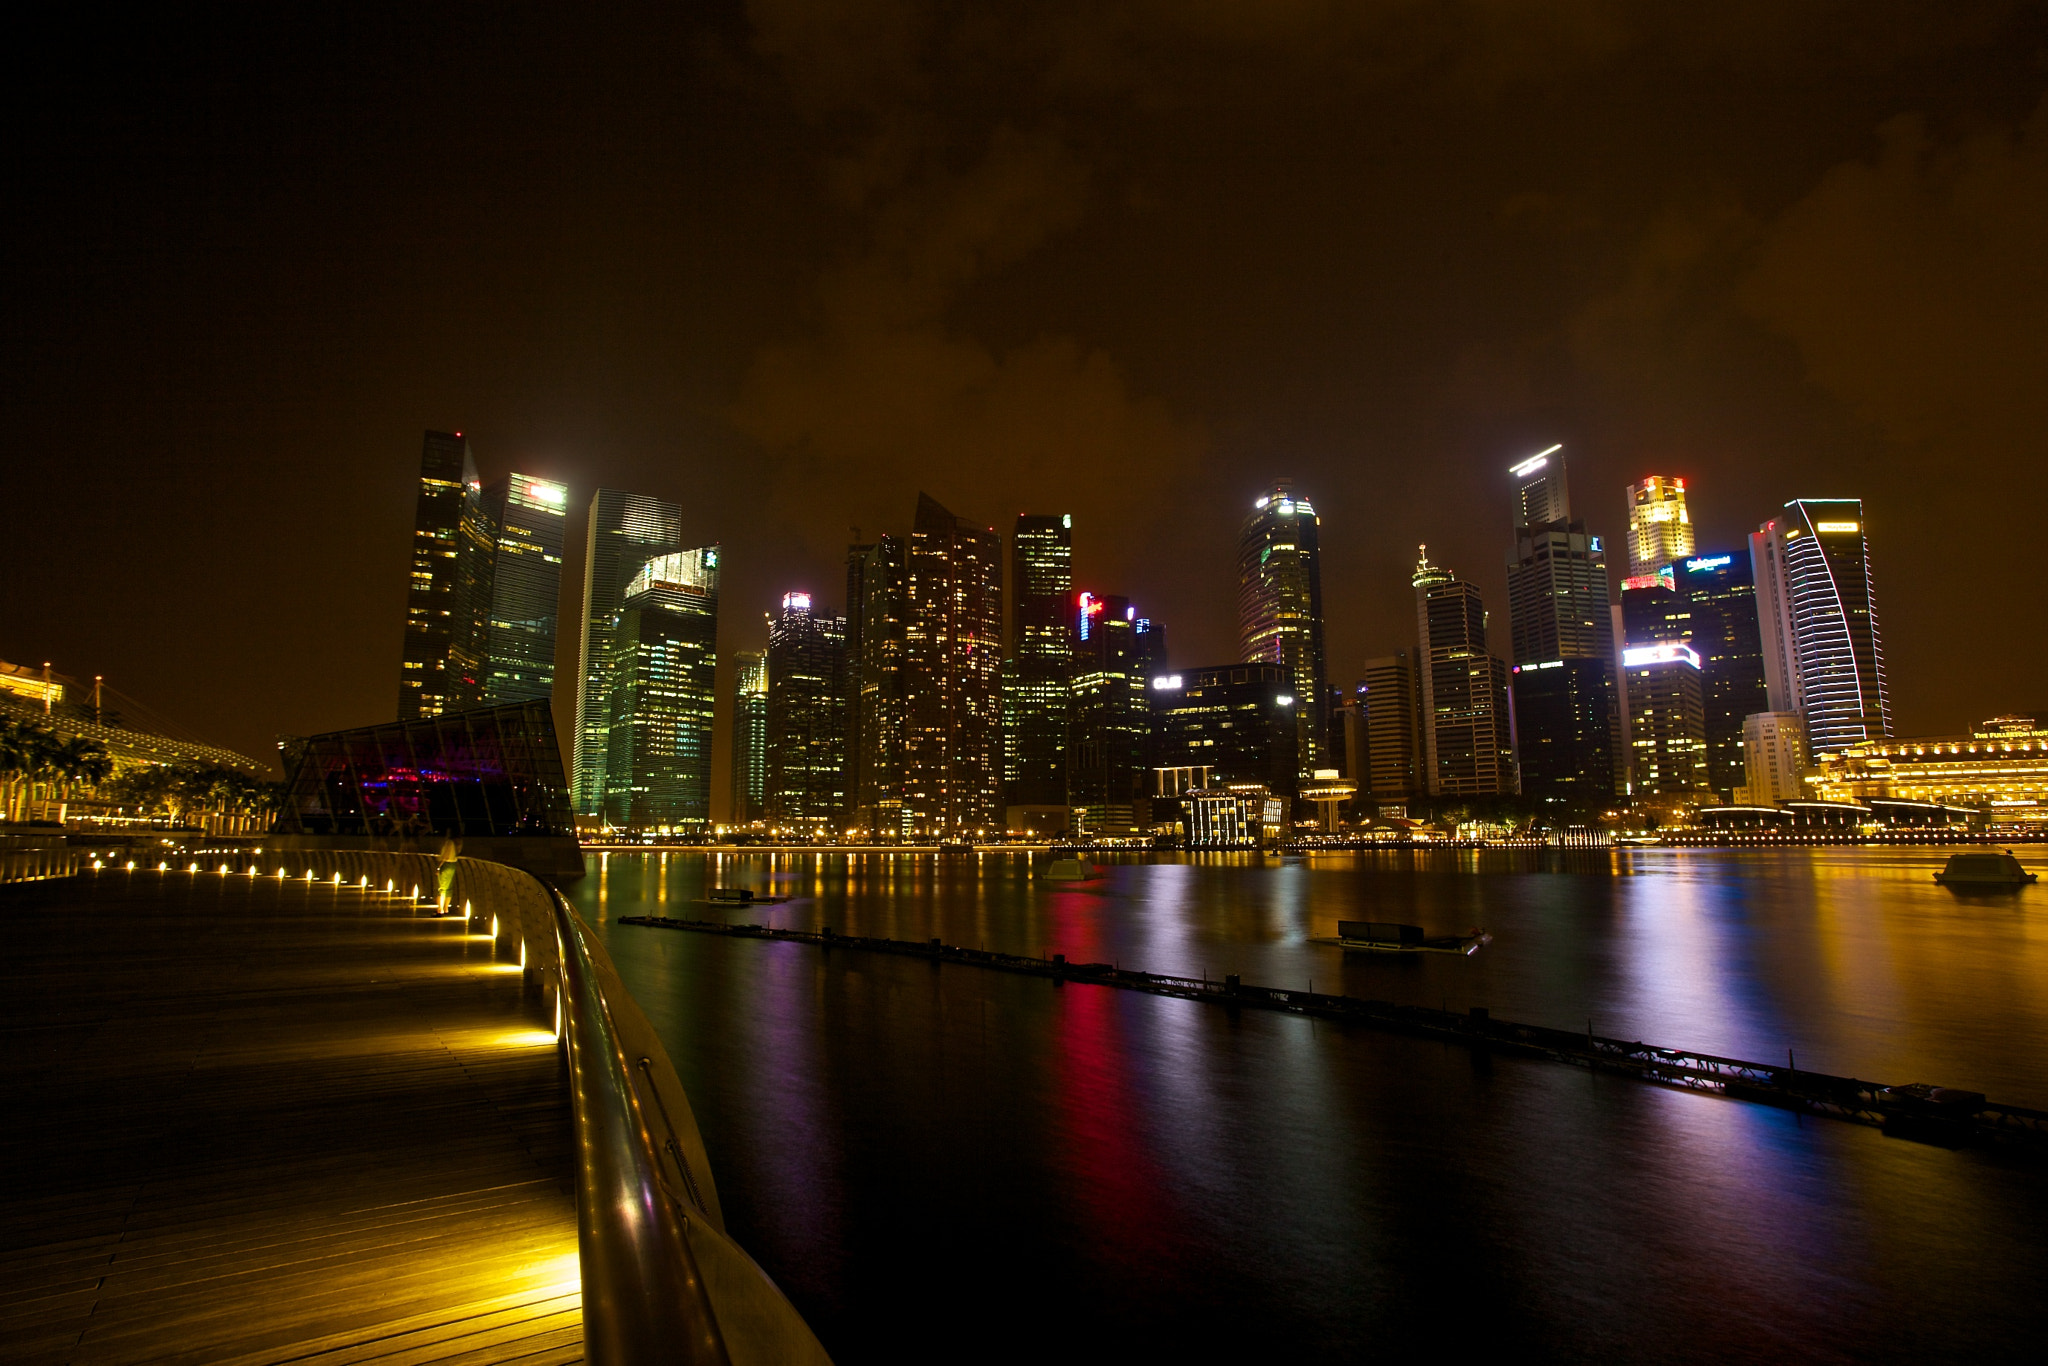 Photograph Singapore City Skyline by Sean Cheng on 500px